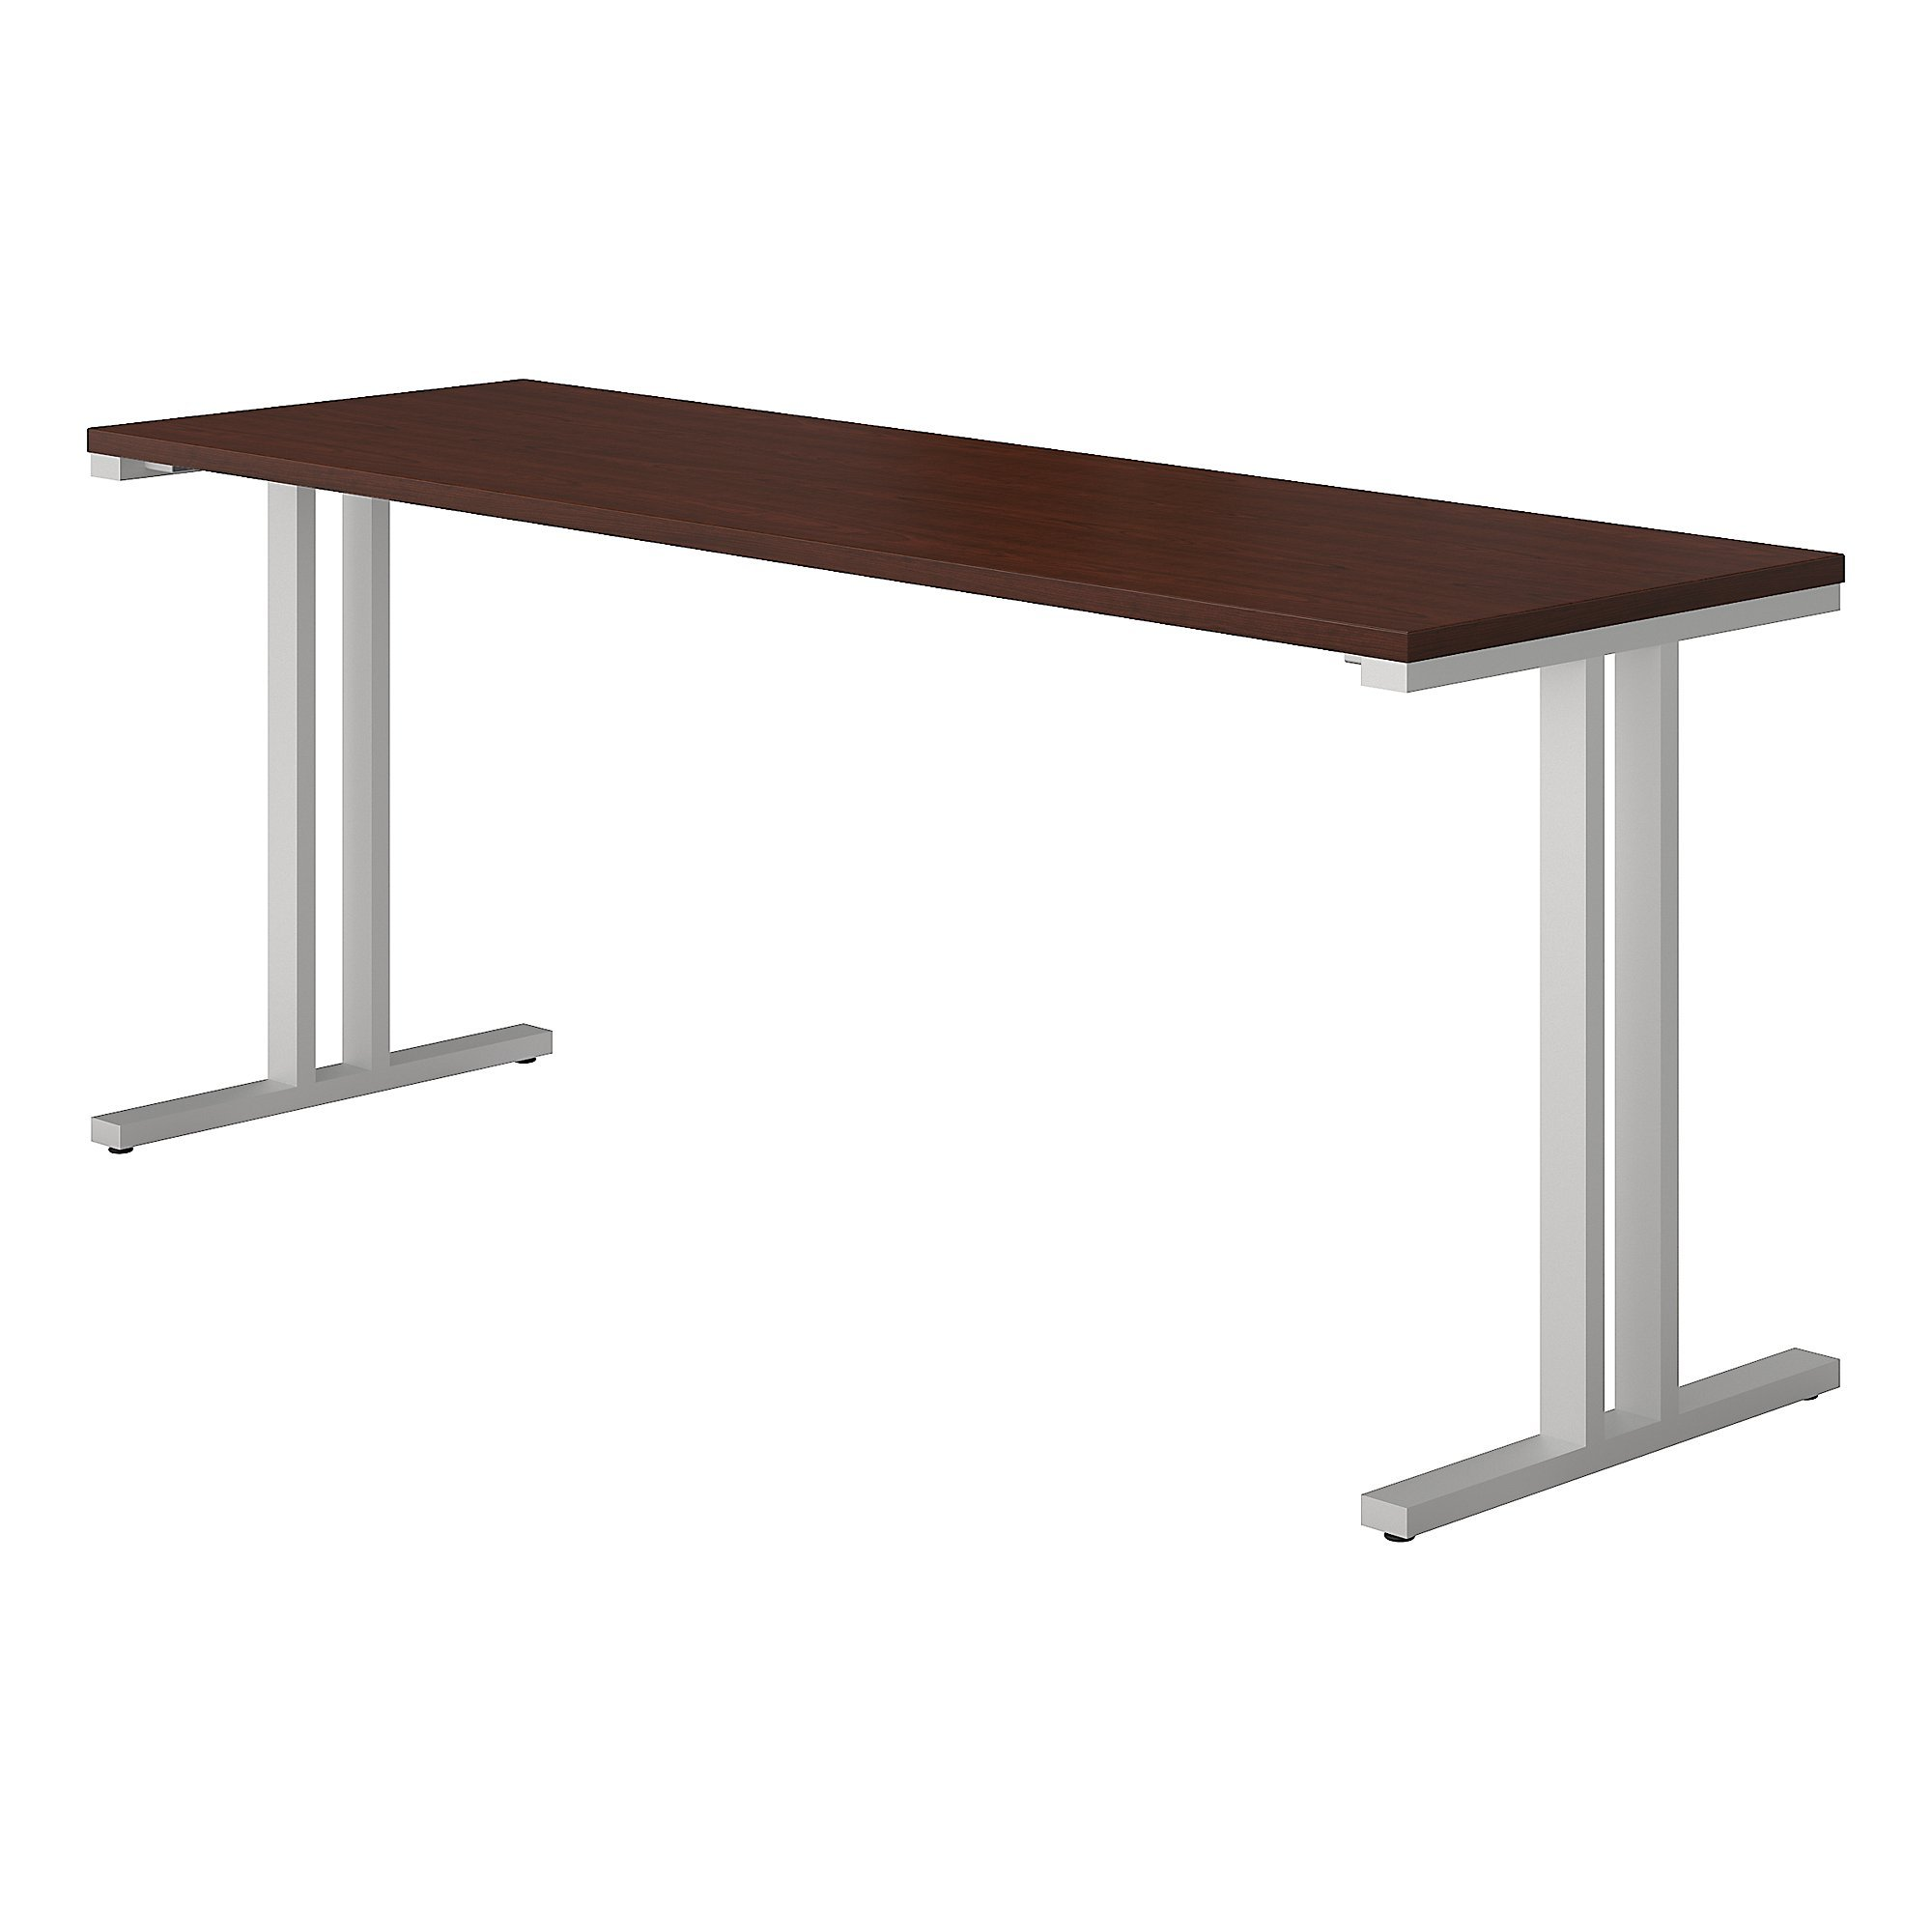 Bush Business Furniture 400 Series 72W x 24D Training Table in Harvest Cherry